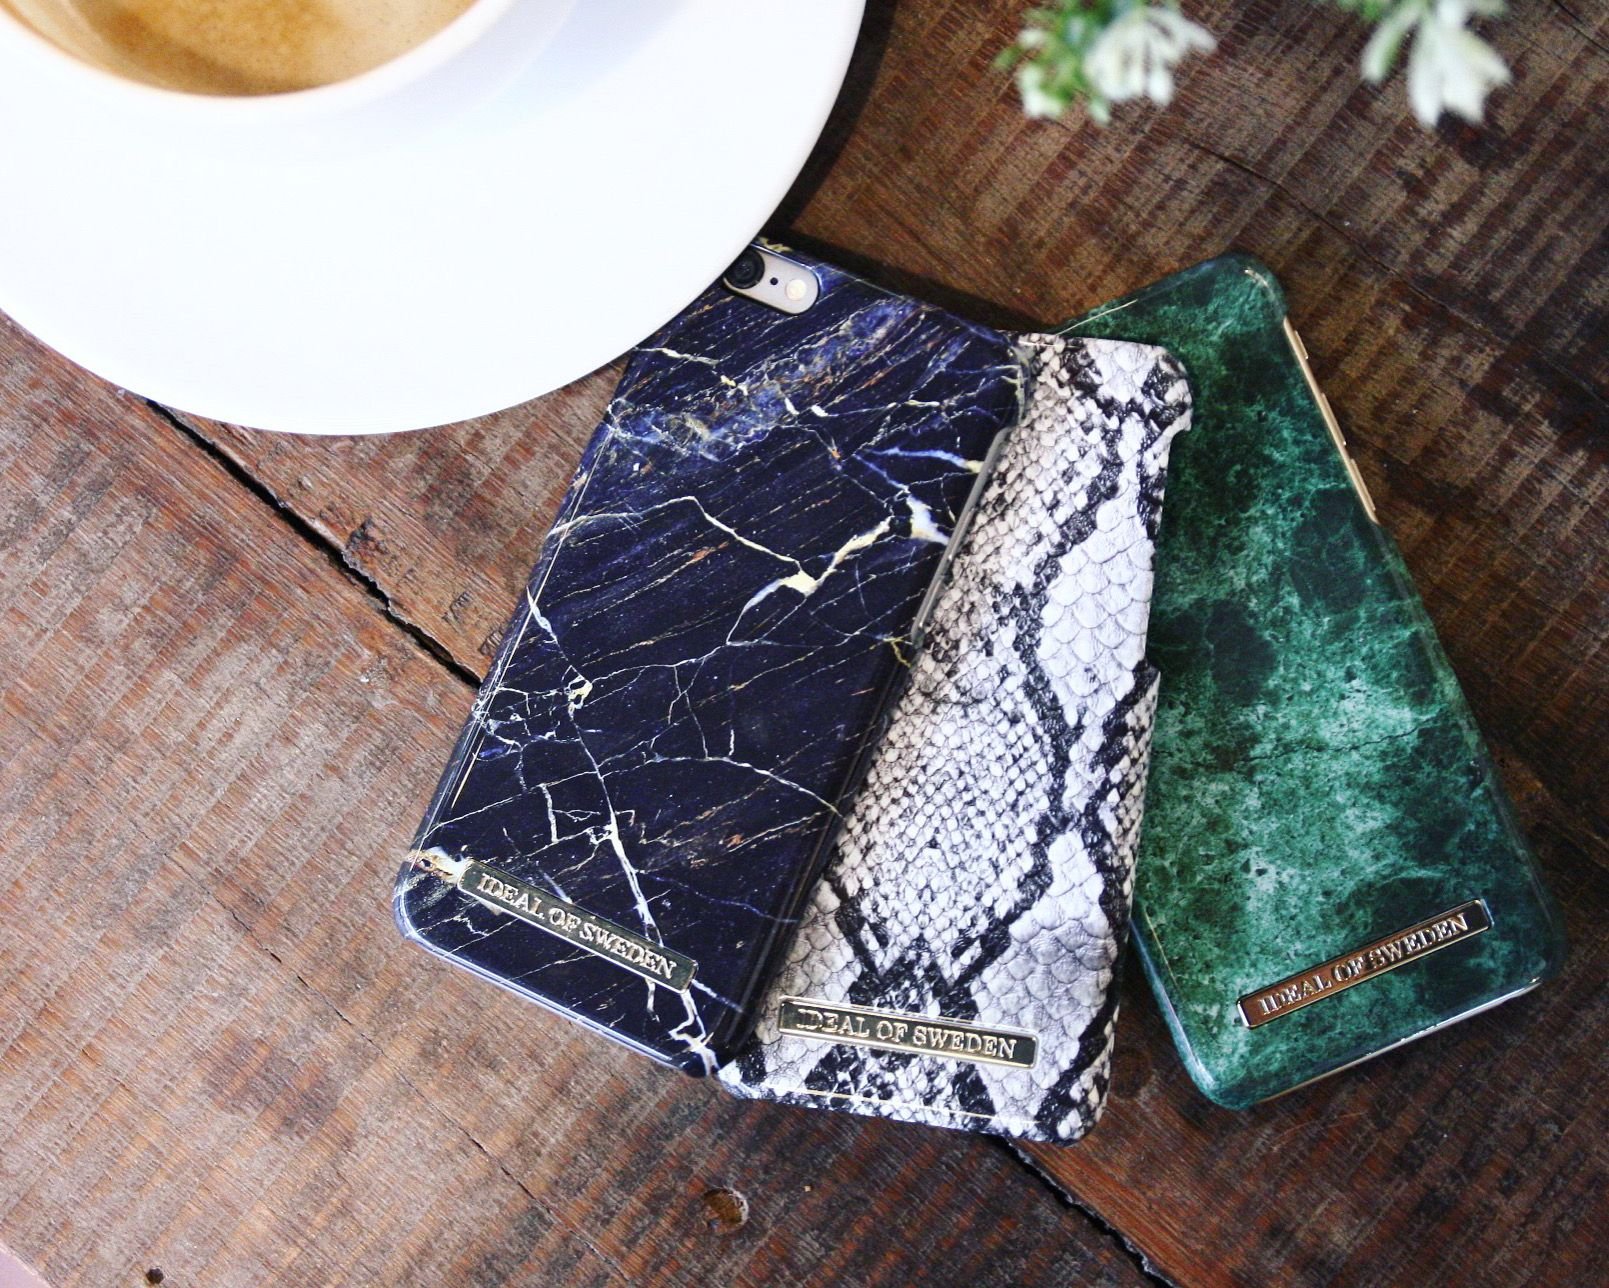 Black Marble, Python, Green Marble, iphone case. Idealofsweden. iDeal of Sweden